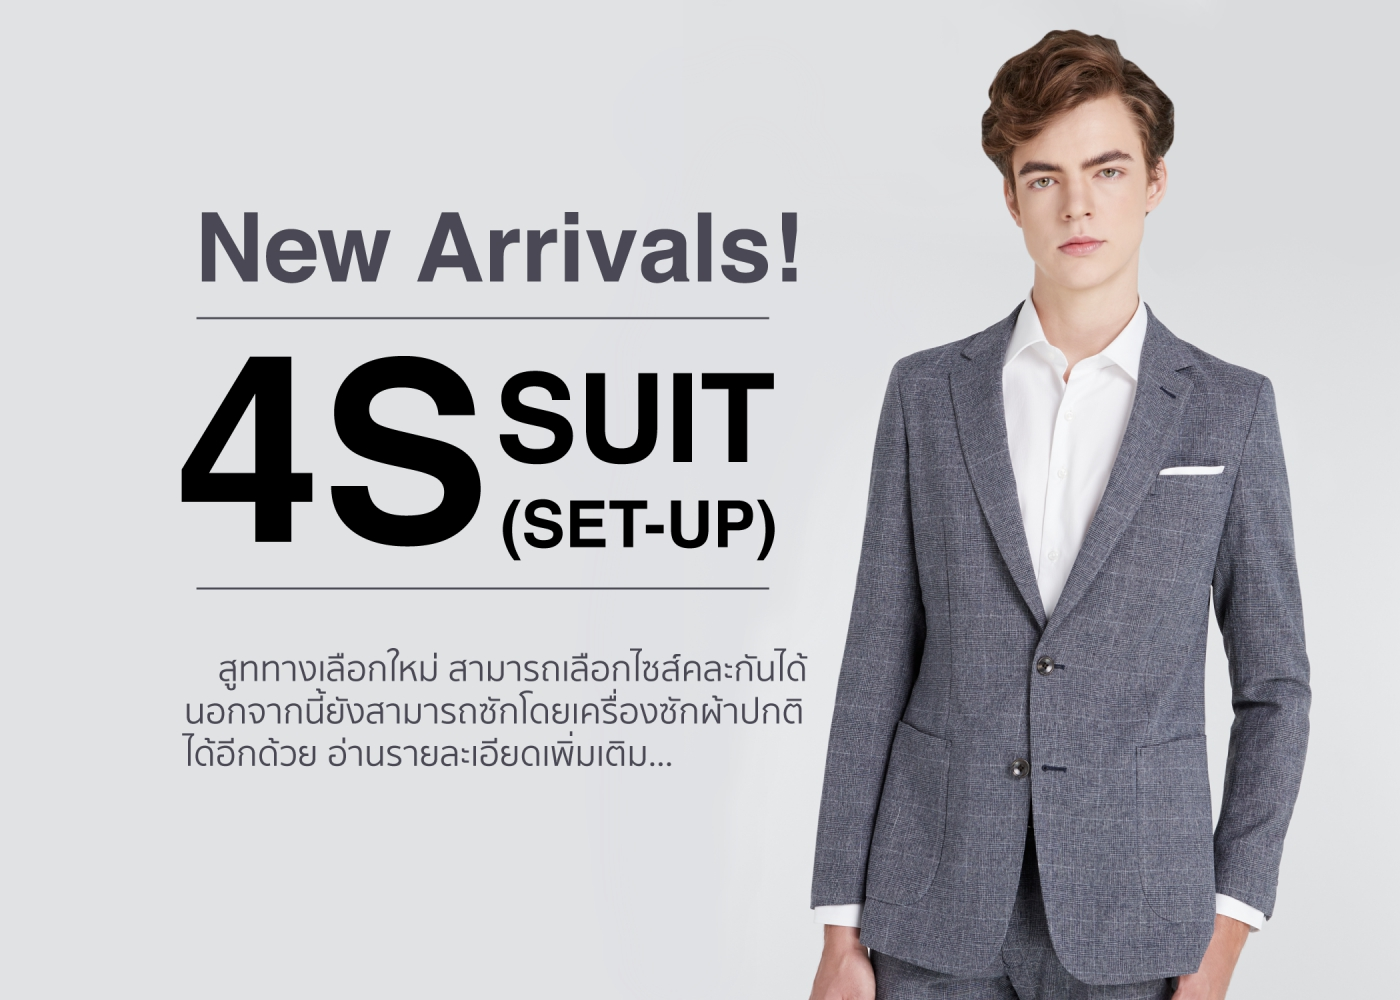 New Arrival! 4S Suit Set-Up ลาย Check รุ่นใหม่ซักเครื่องได้!